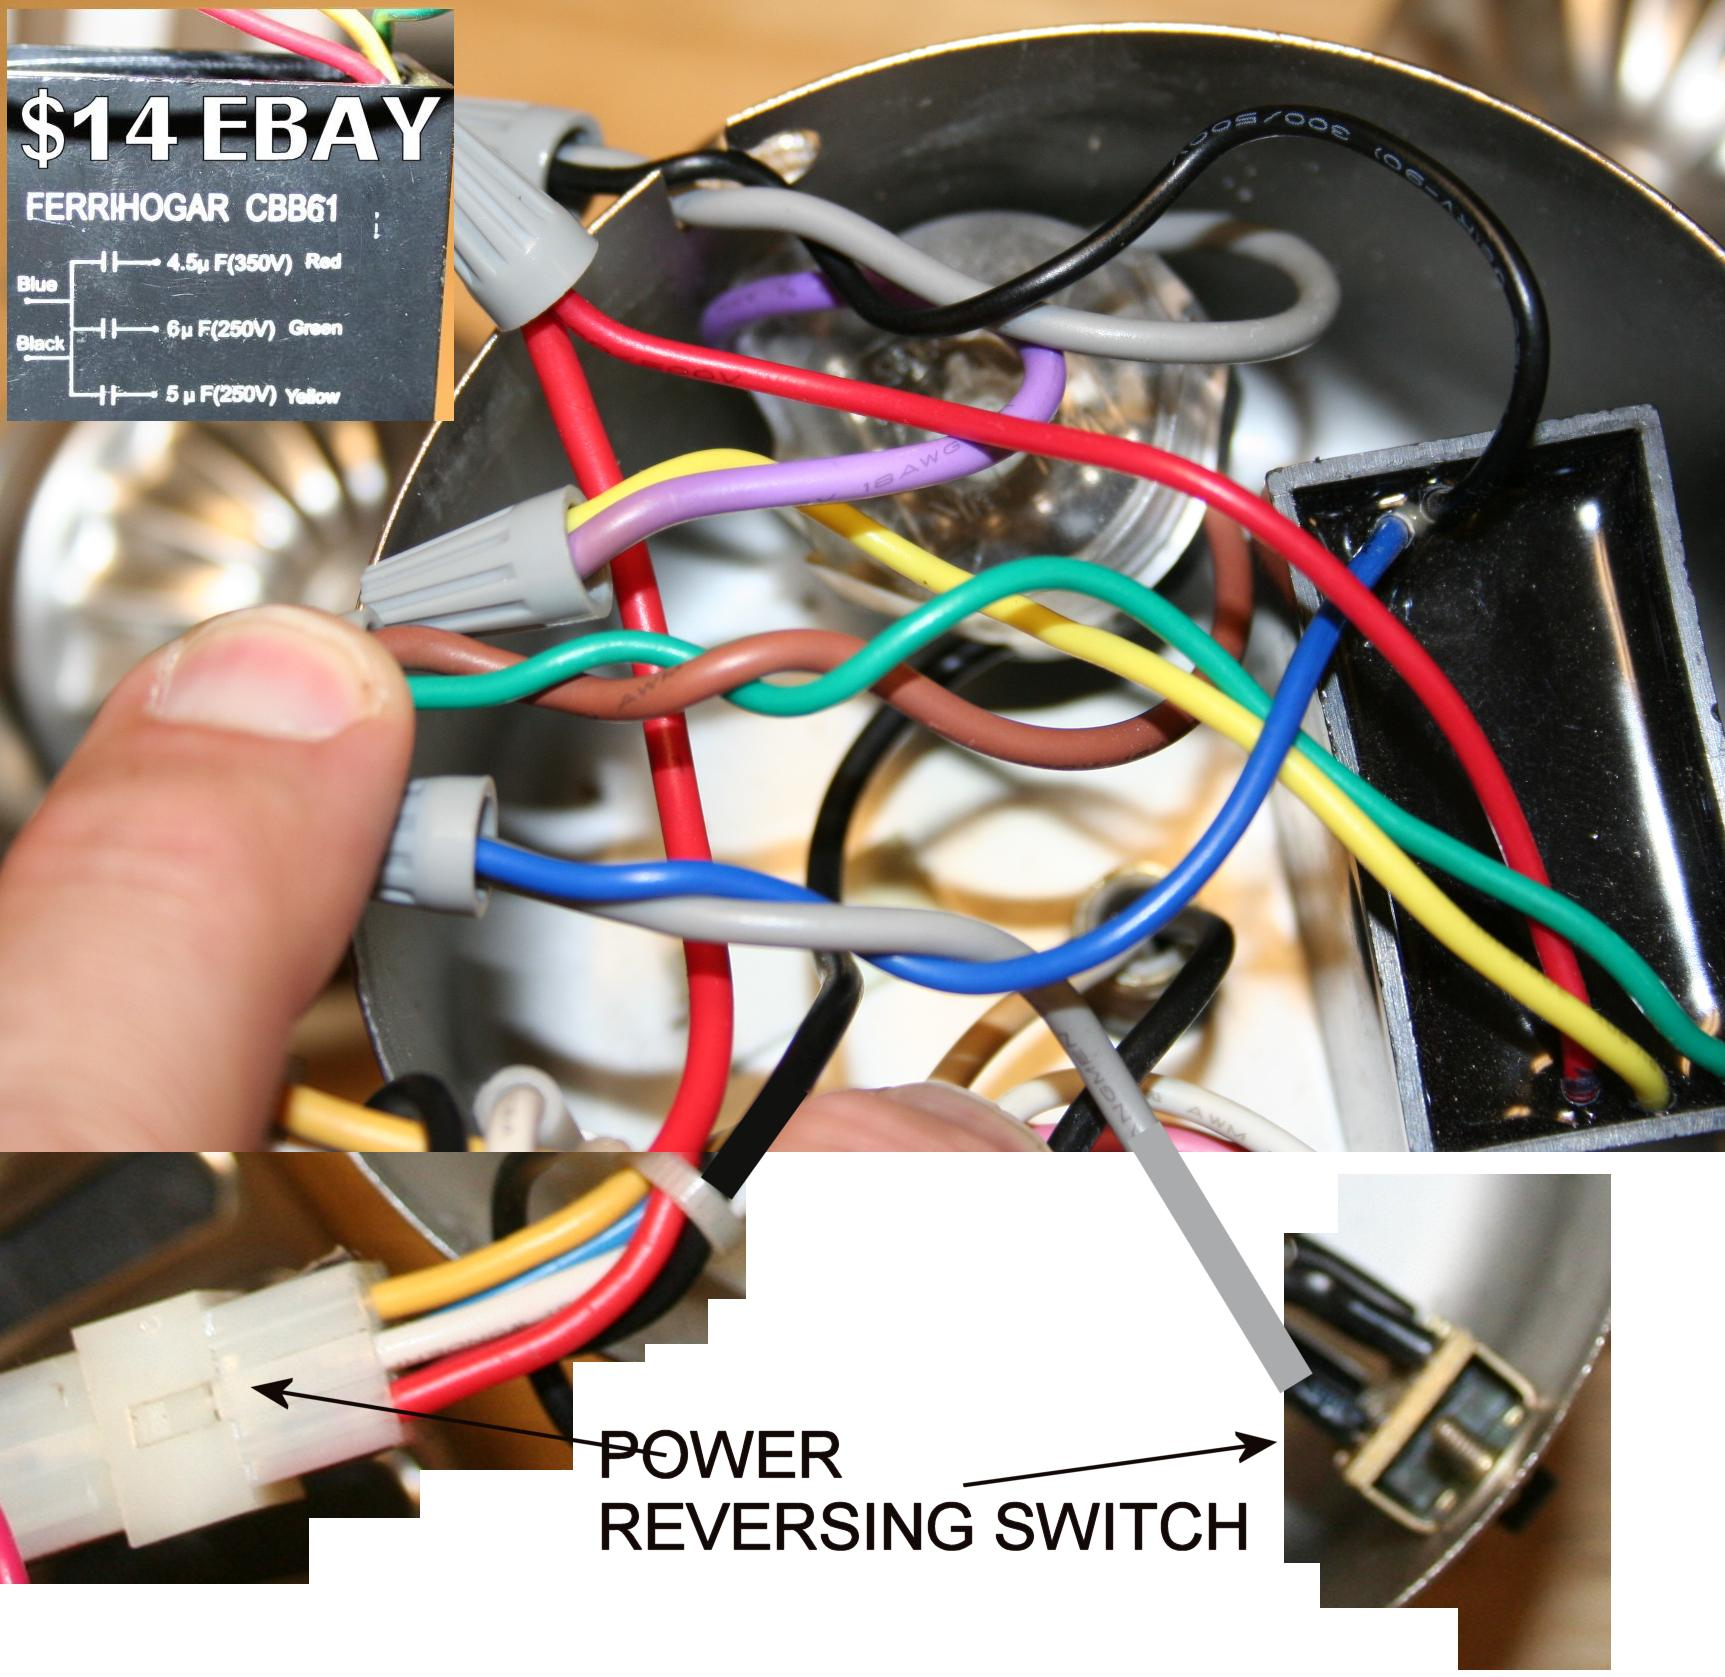 How To Wire Ceiling Fan Light Wall Switch - Ceiling Fans Ideas - Ceiling Fan Wall Switch Wiring Diagram